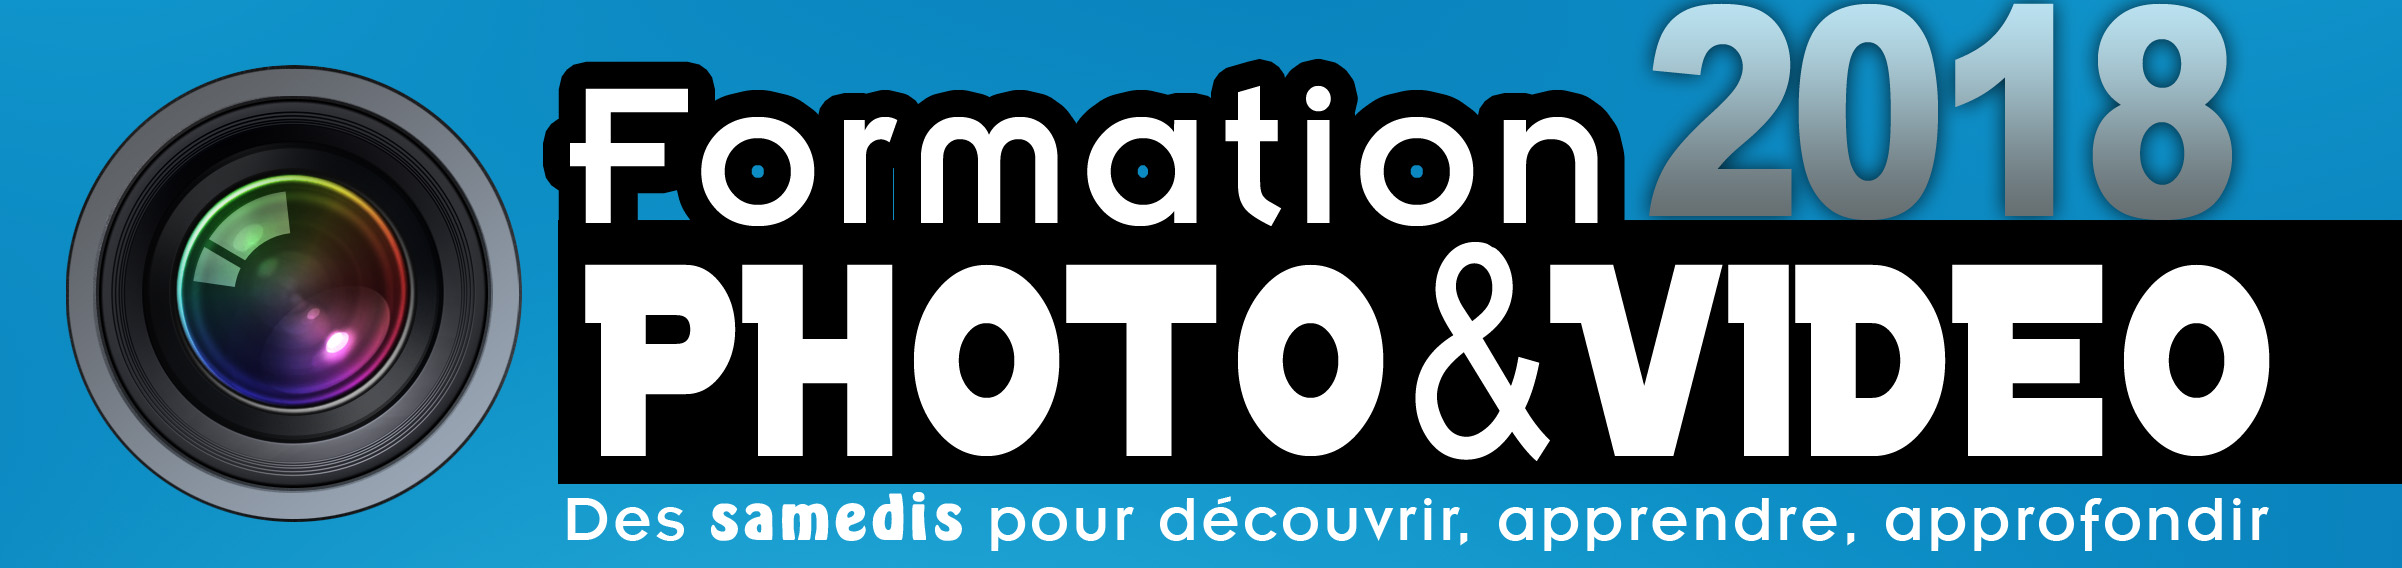 Formation Photo & Vidéo @ Pierrelatte